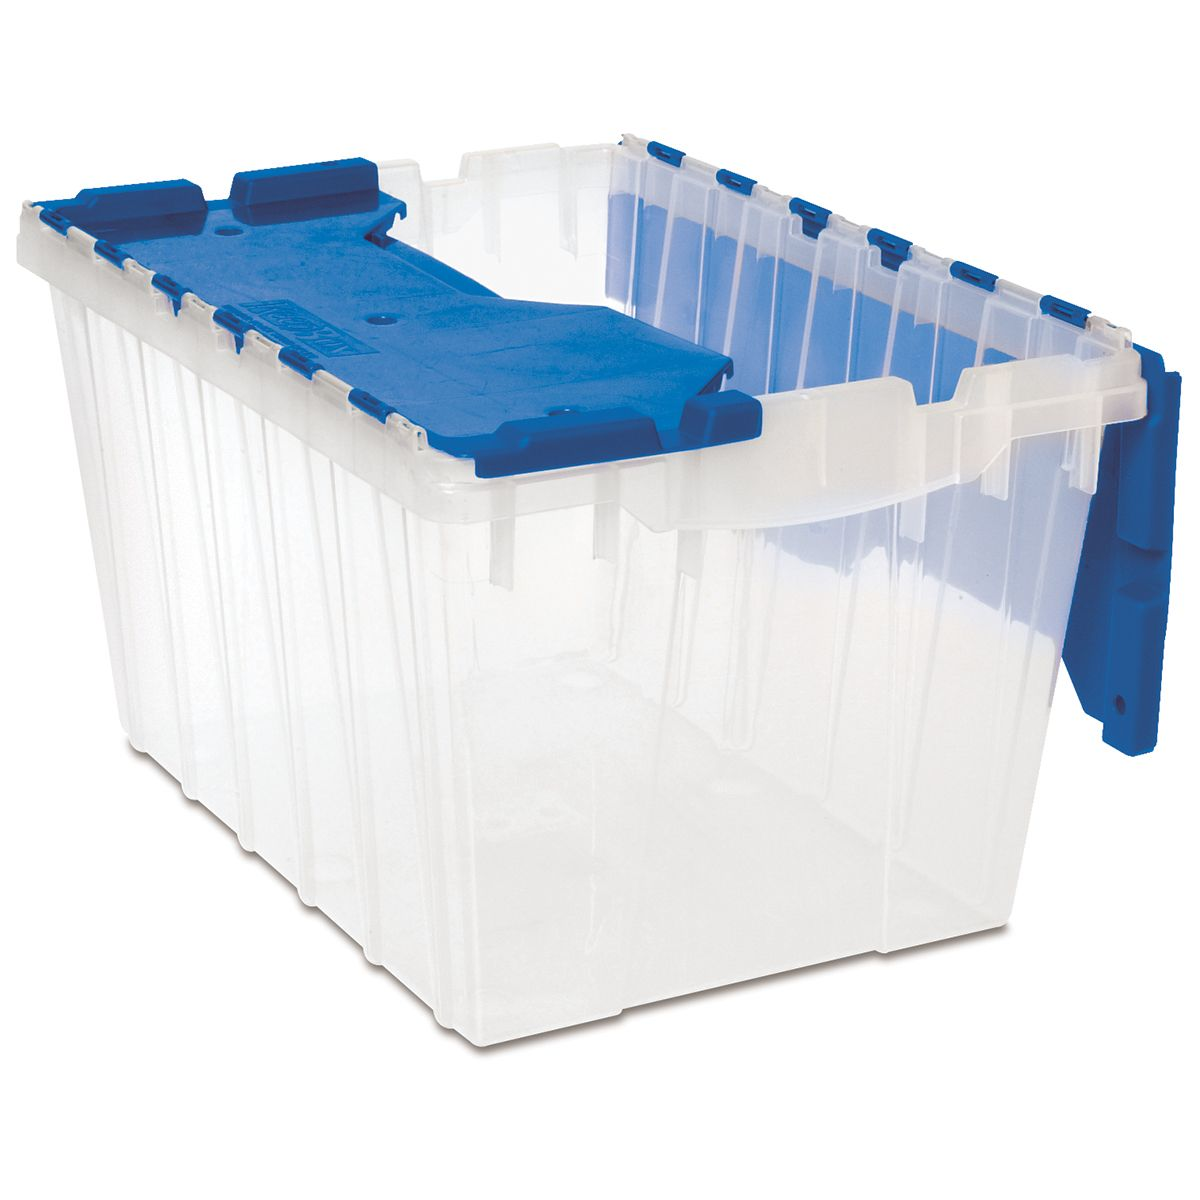 Keepbox 12 Gal 21 1 2 X 15 X 12 1 2 Clear Blue 66486cldbl Storage Storage Bins Plastic Storage